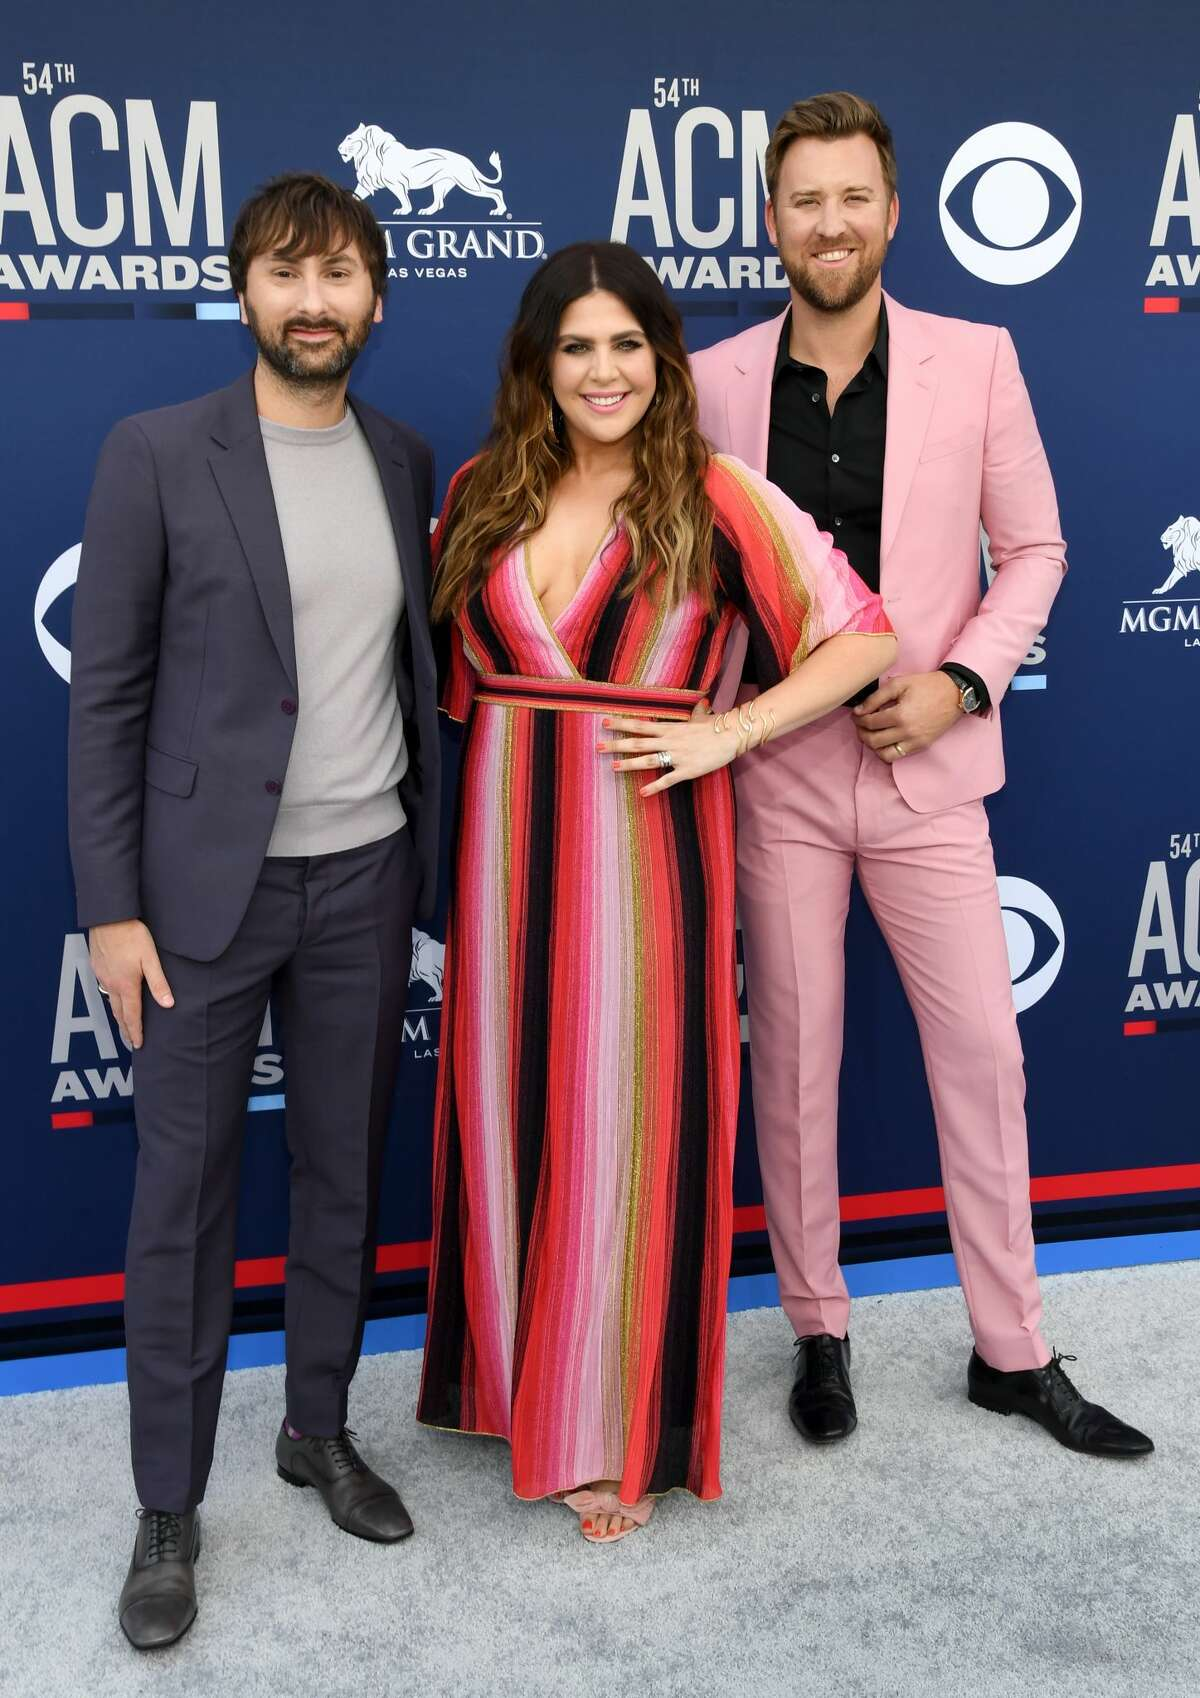 The San Antonio Stock Show & Rodeo announced that Lady A and Midland will be join its 2022 concert lineup.